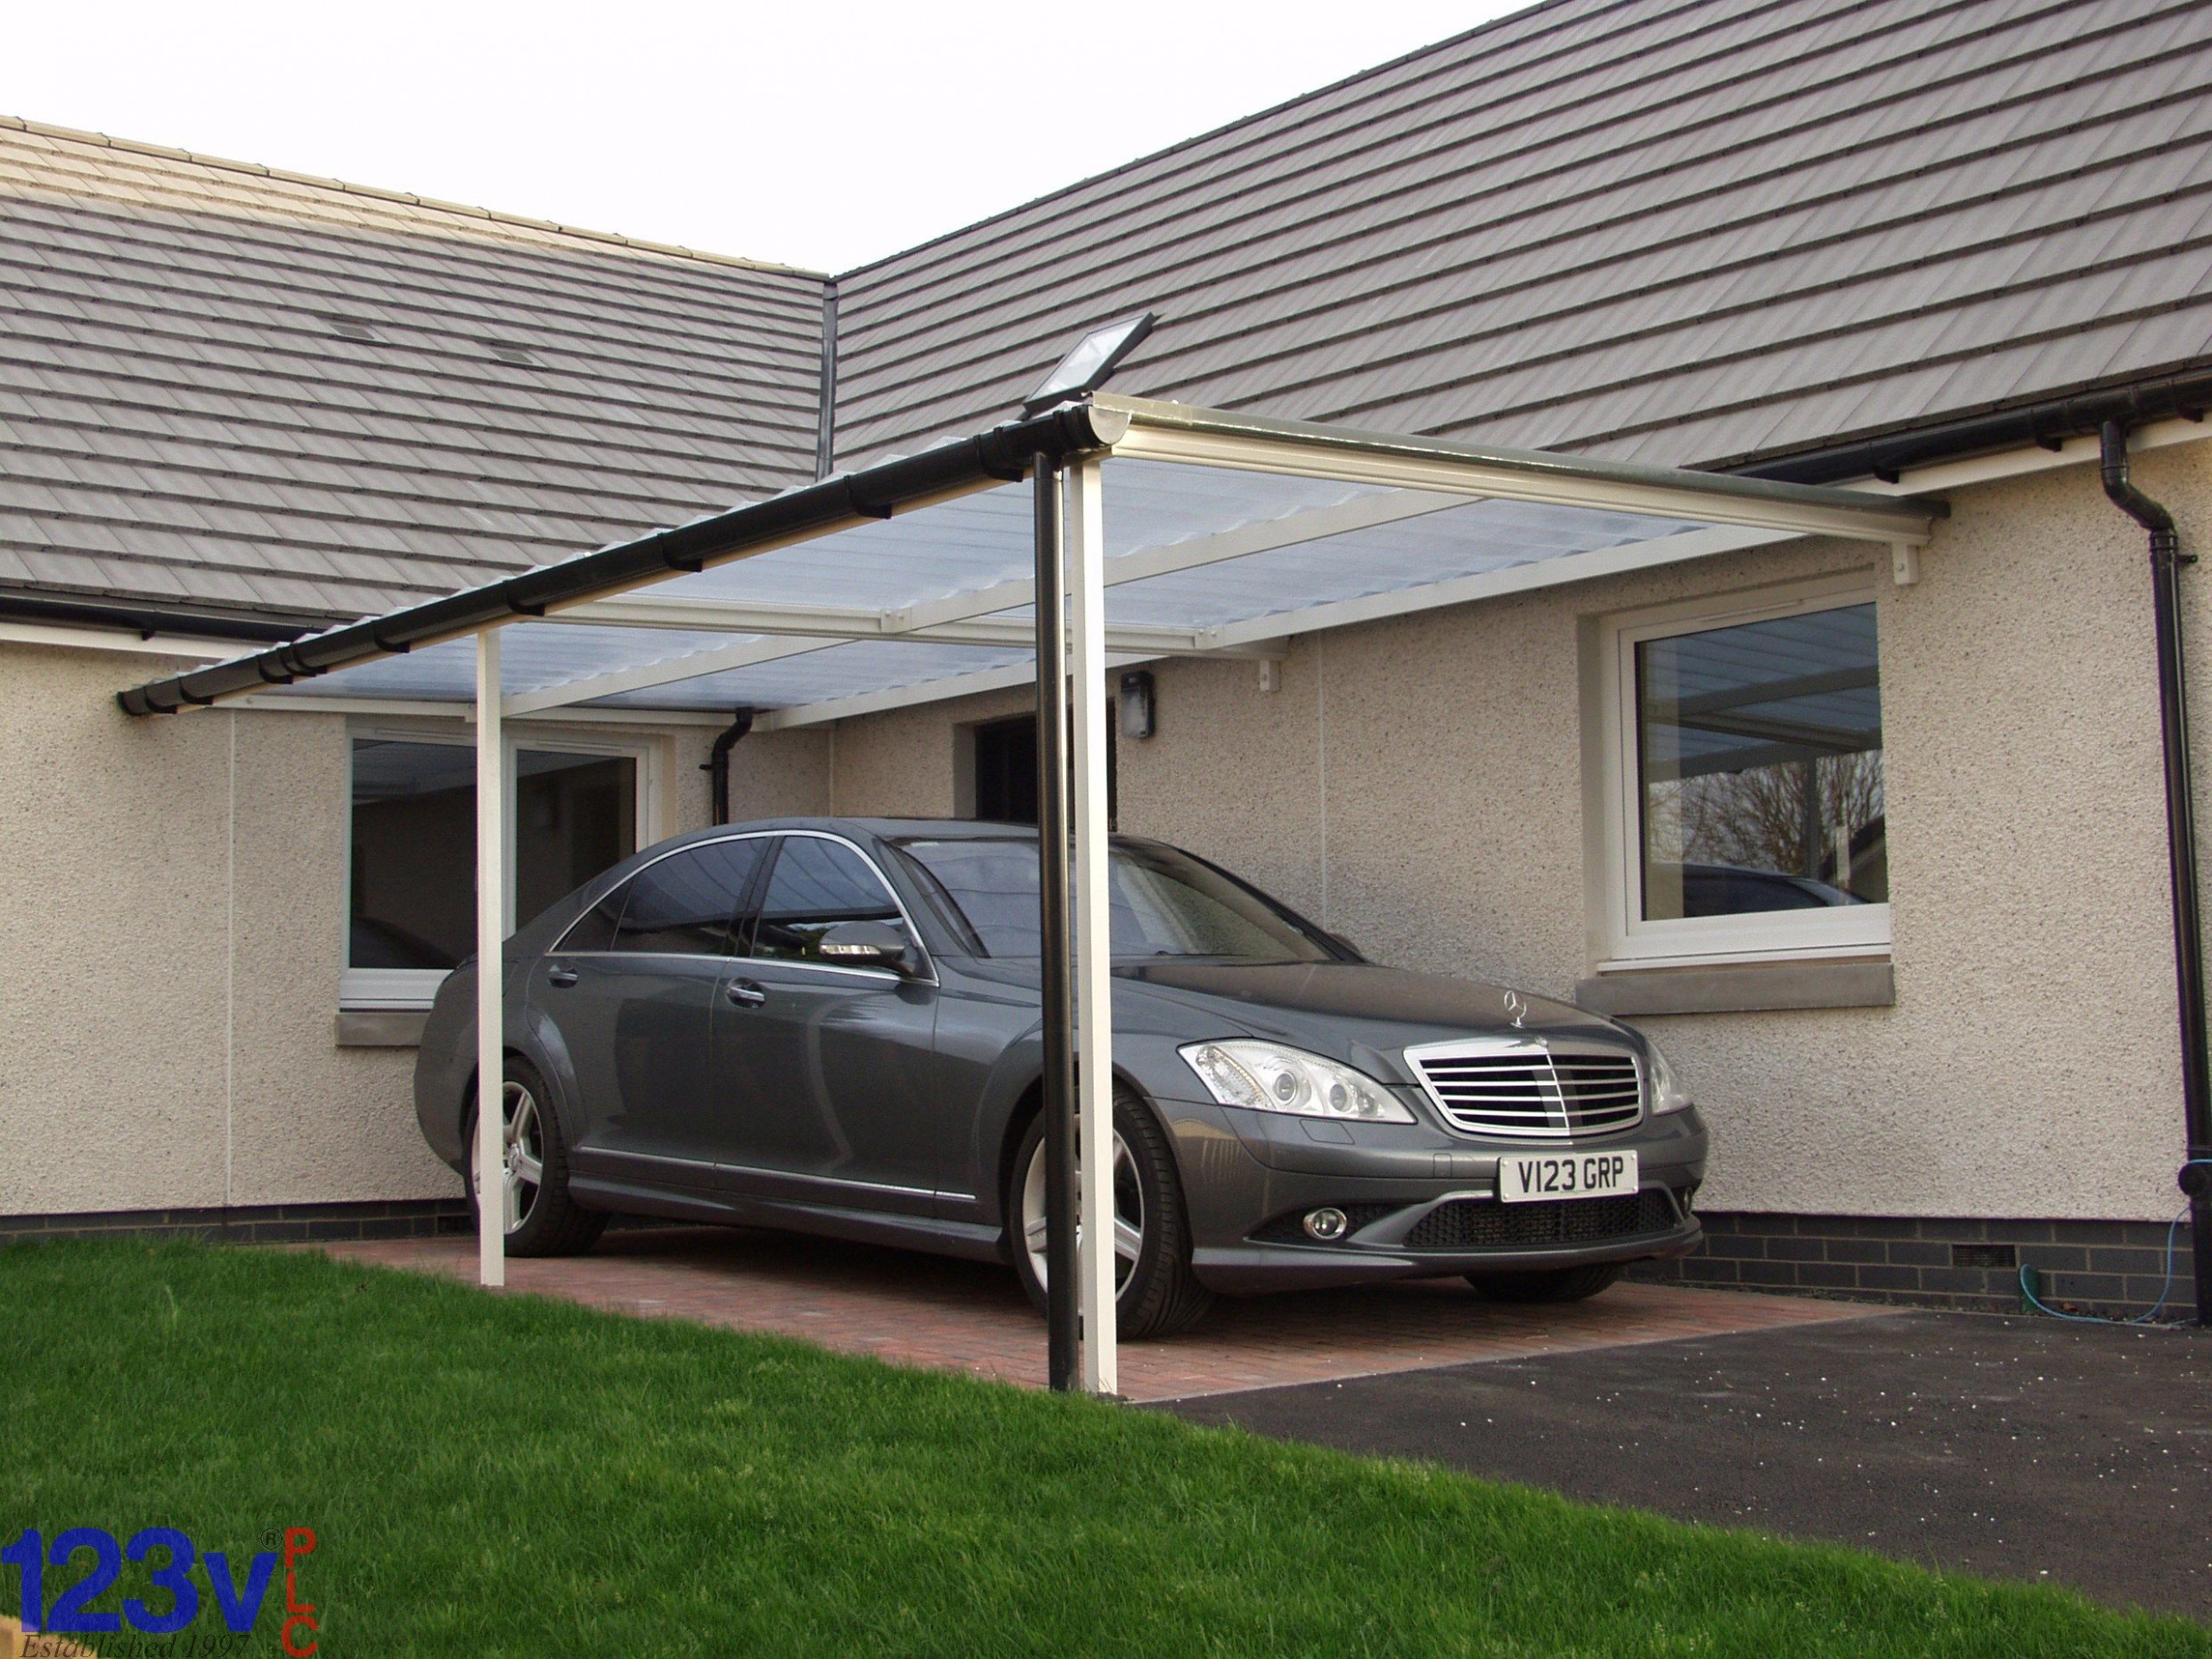 12v Carport Canopy, Neat, Simple, Practical. In & Out Of ..